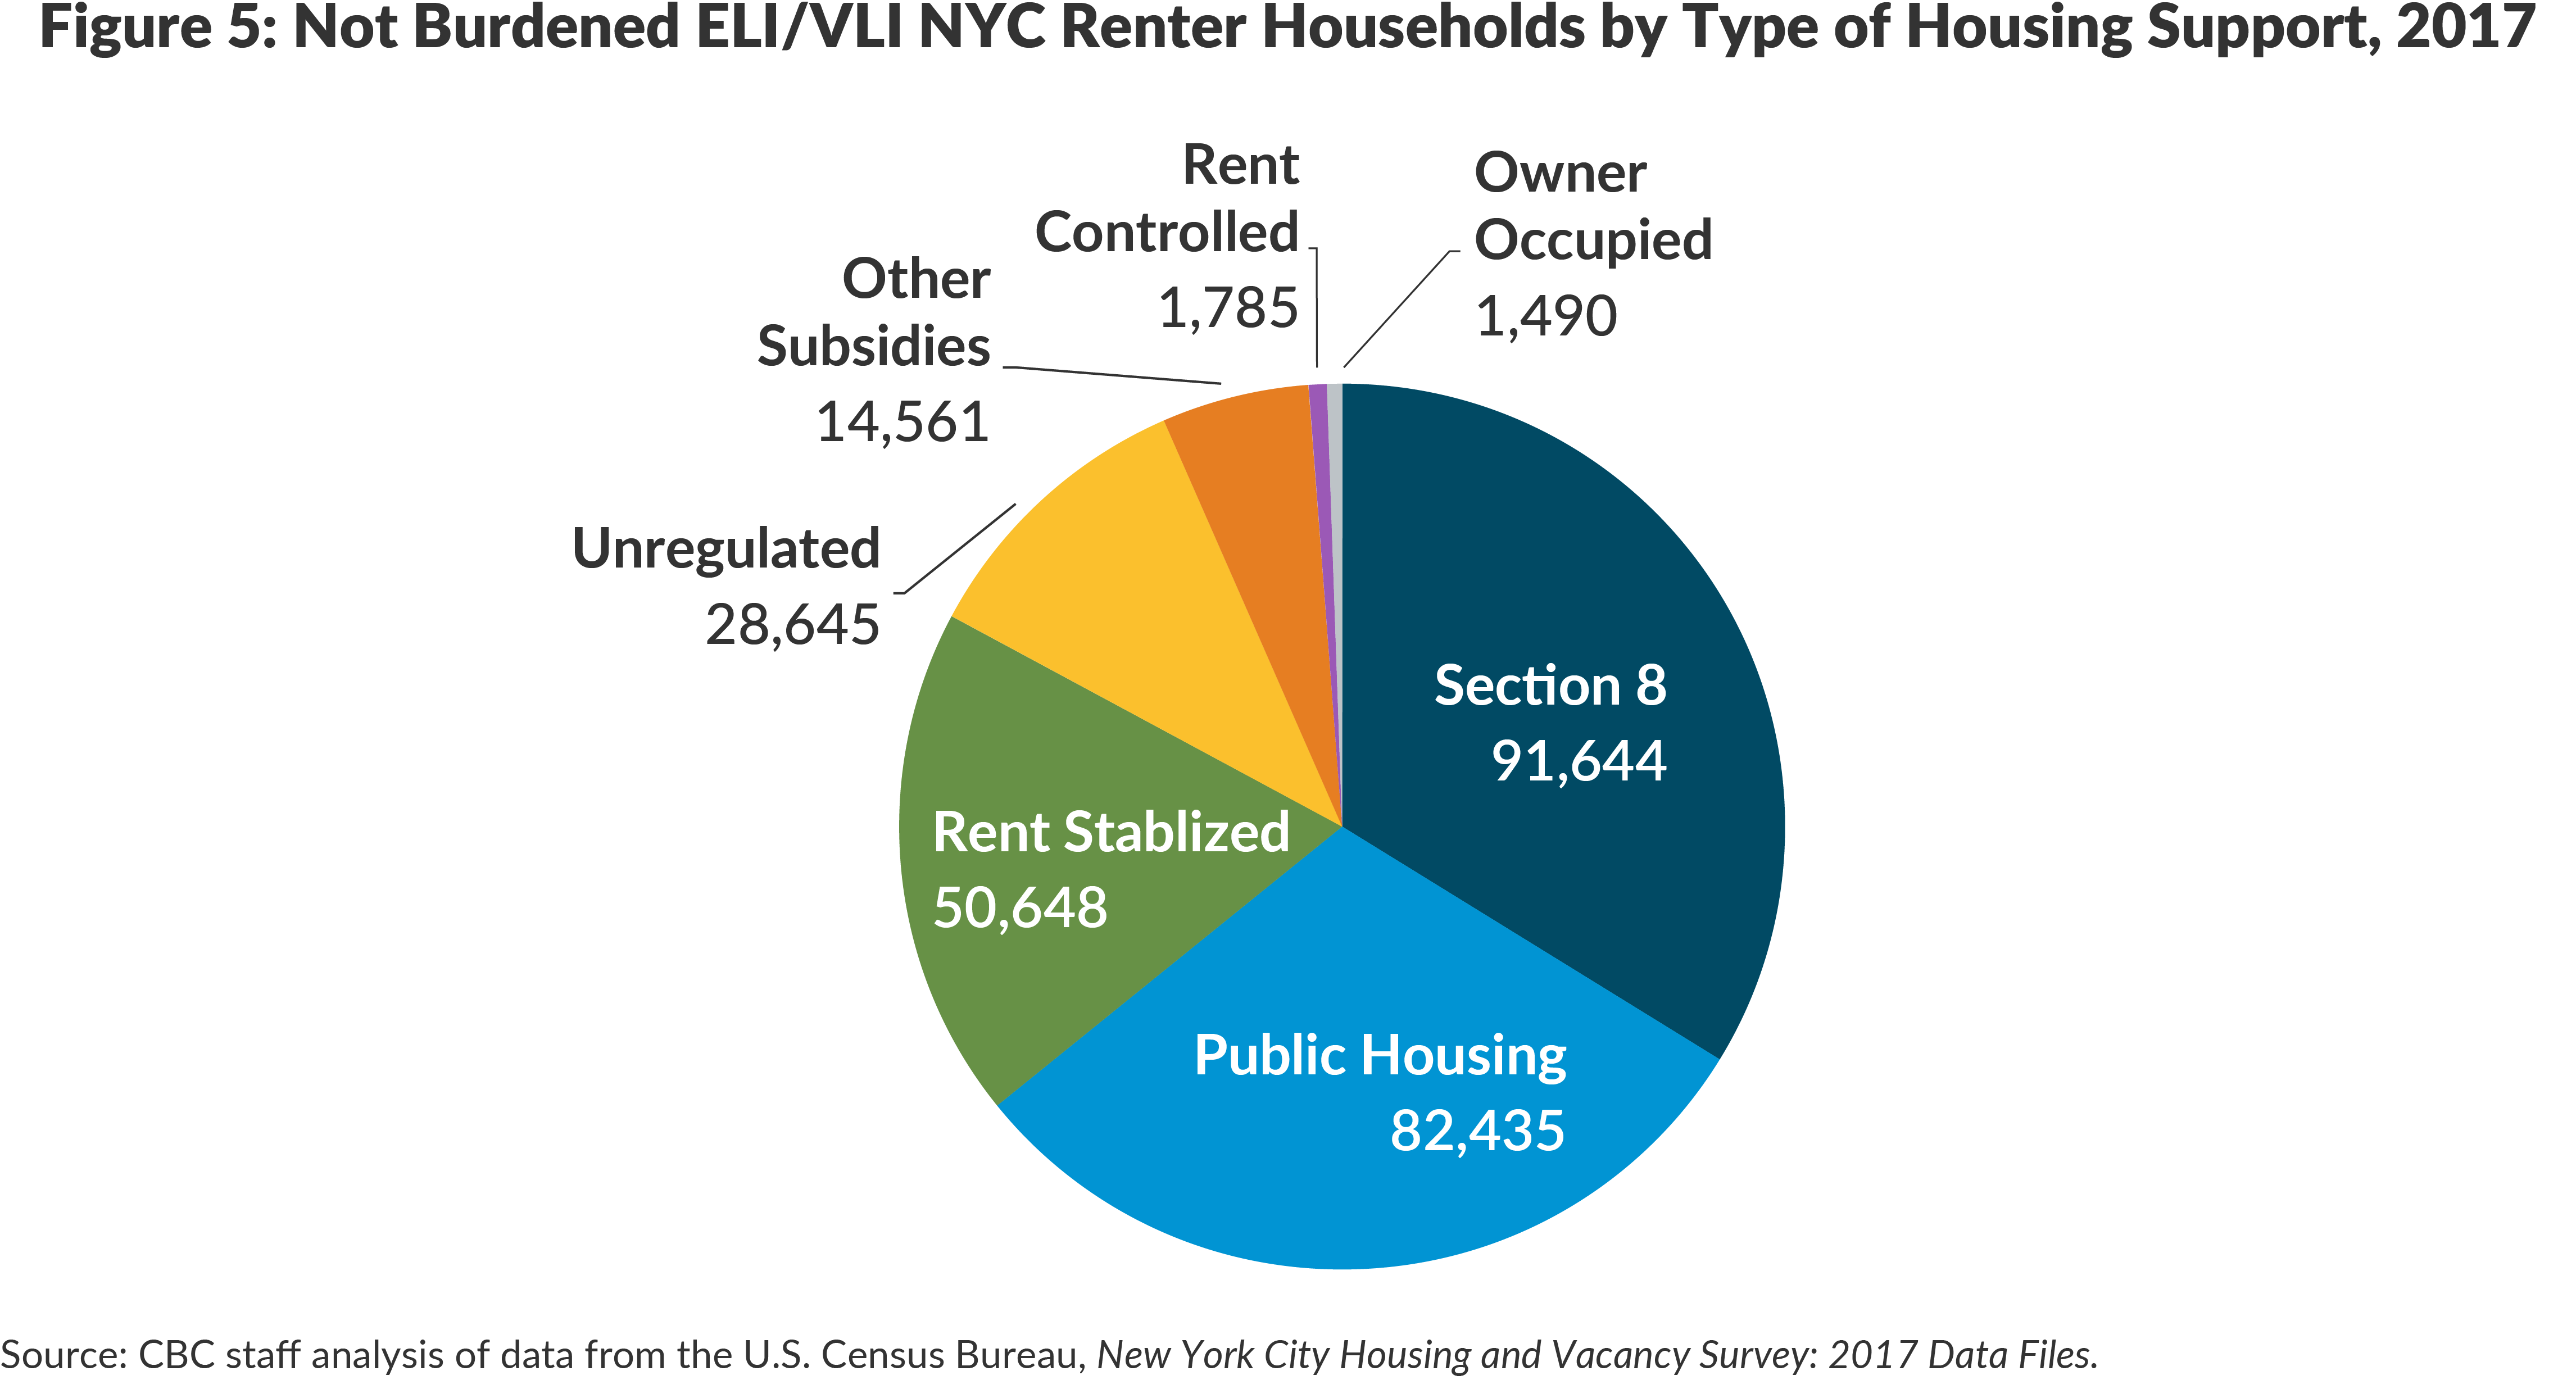 Figure 5. Not Burdened ELI/VLI NYC Renter Households by Type of Housing Support, 2017